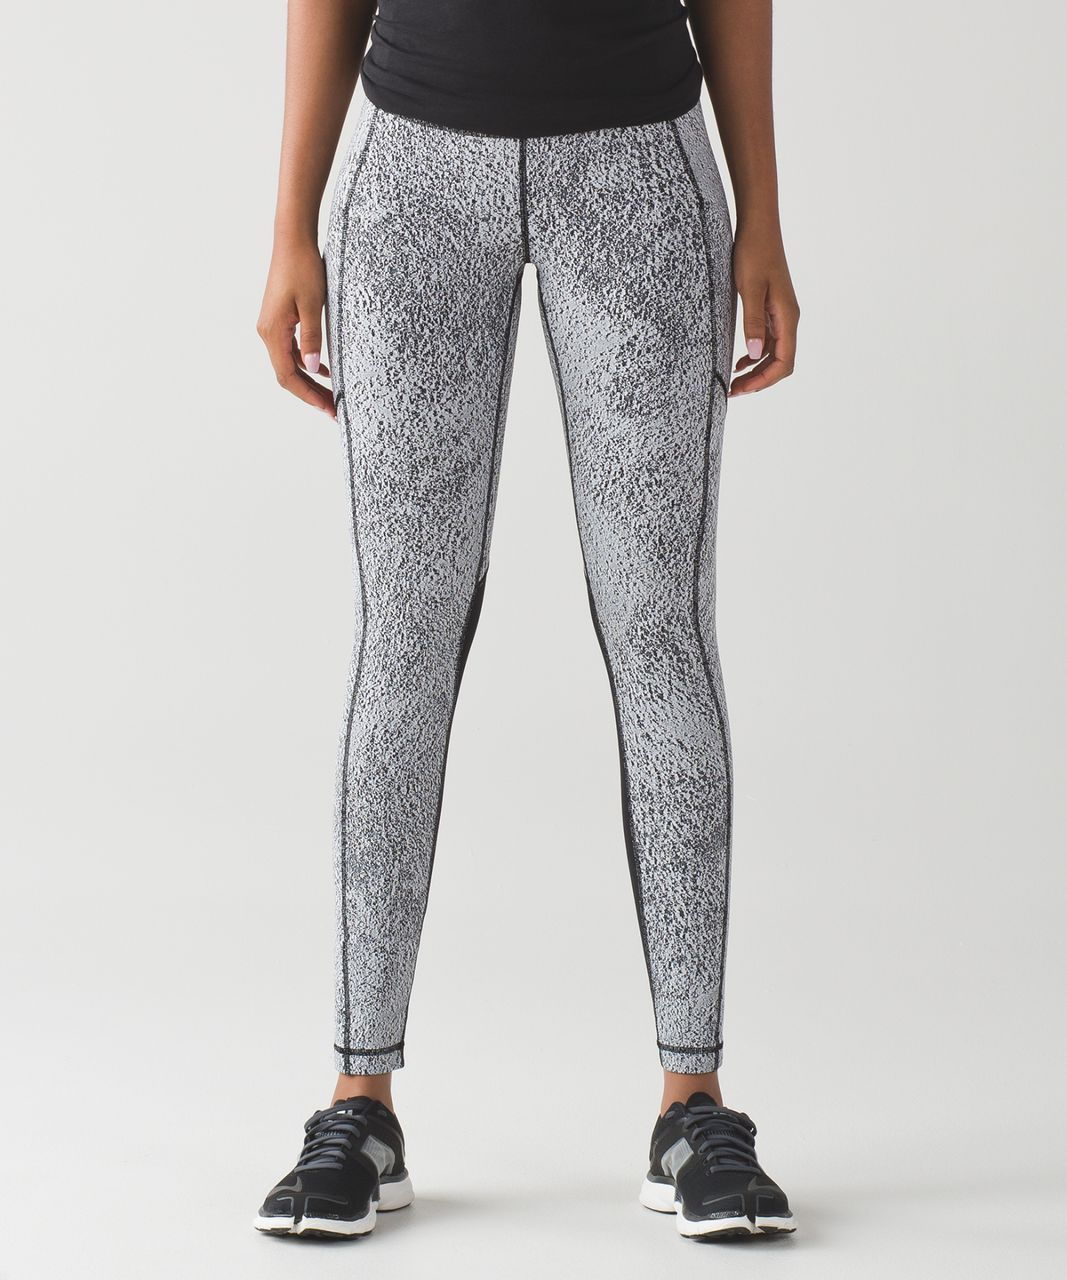 Lululemon Speed Tight V - Power Luxtreme Spray Jacquard White Black / Black